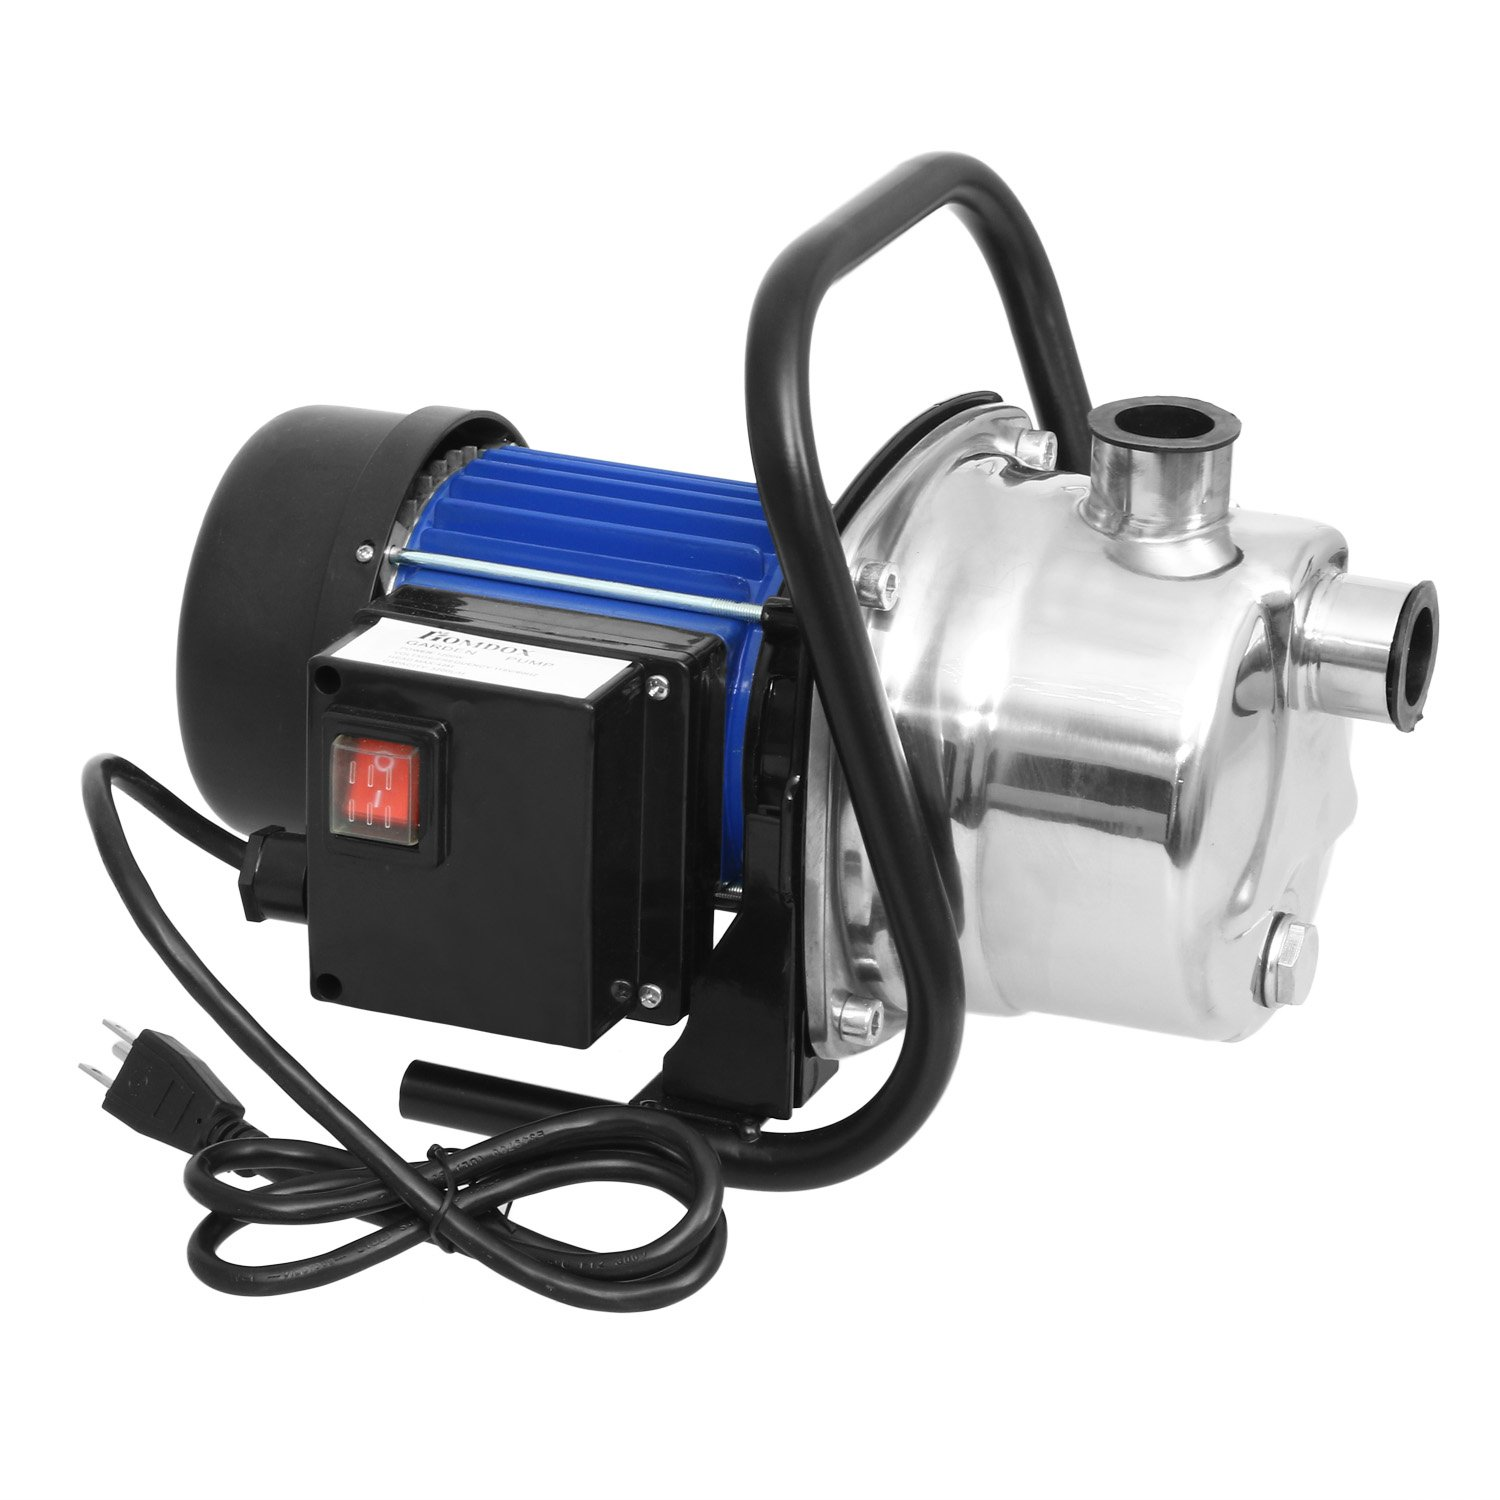 1.6HP Stainless Steel Water Pump Electric Transfer Pump Submersible Sump Pump Shallow Well Pump Home Garden Lawn Sprinkling Booster Pump (US Stock) by Binxin (Image #1)